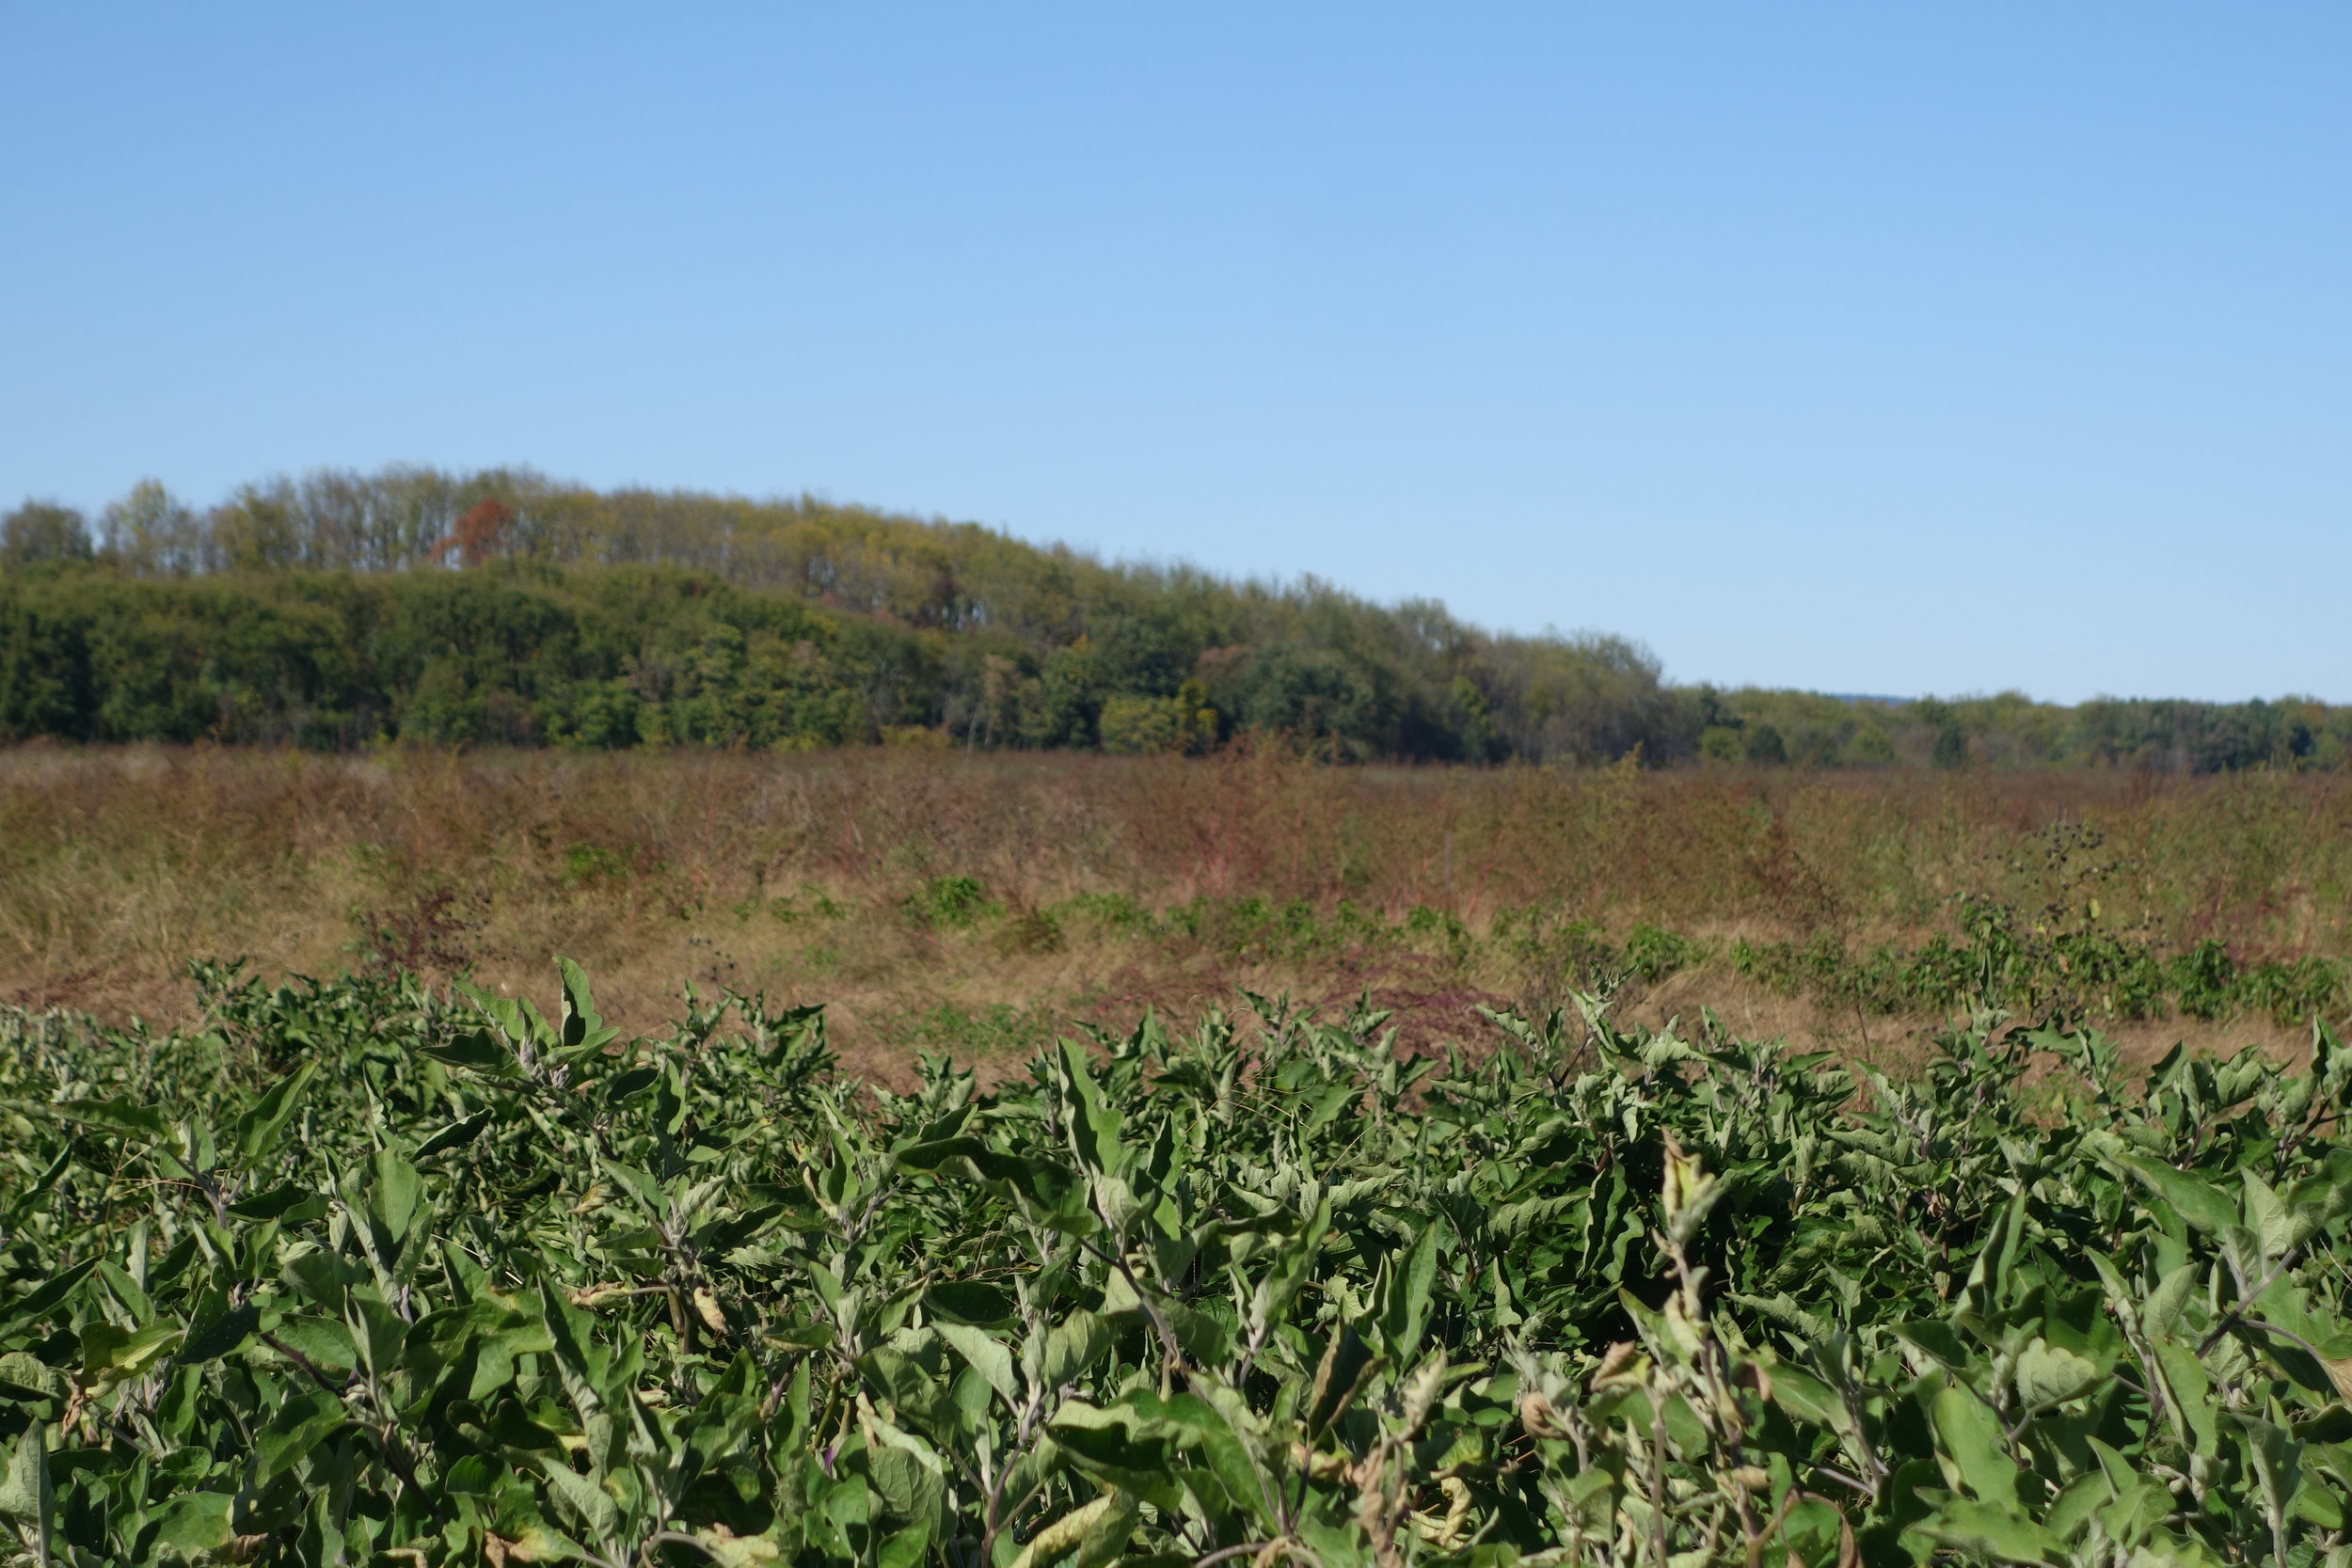 One of the fields at Bracco Farms, Pine Island NY in the late summer.